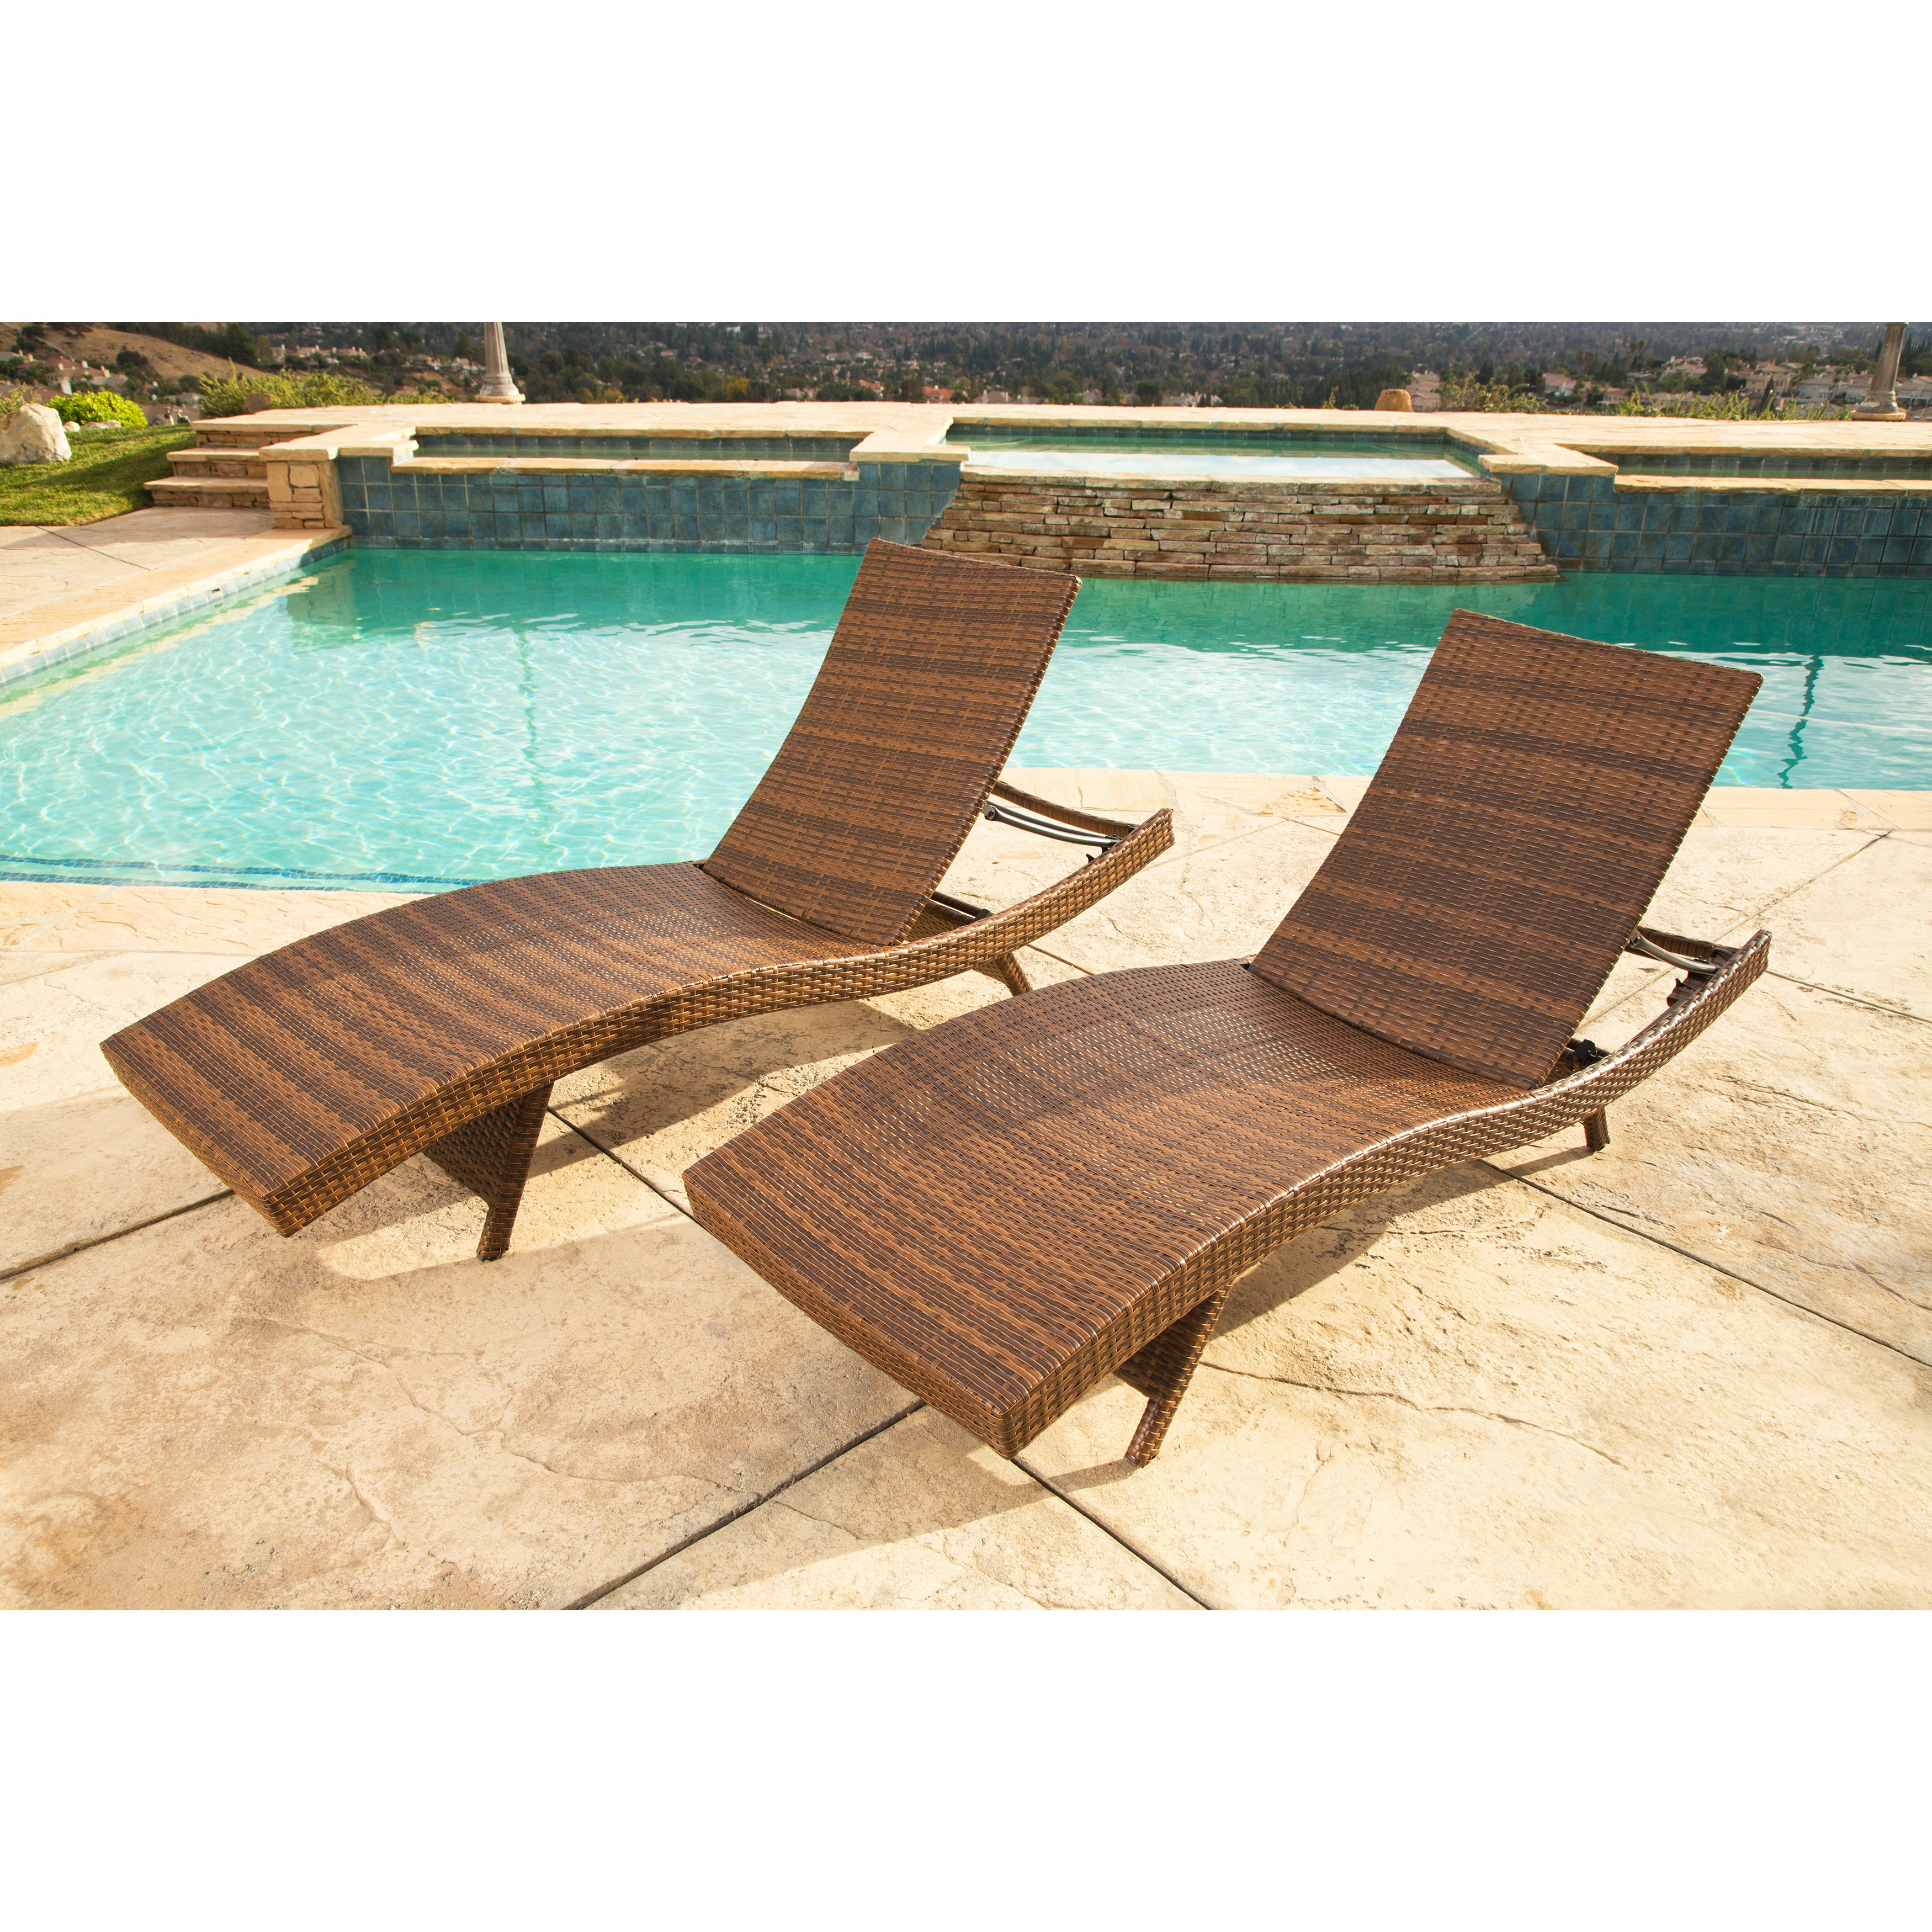 Shop Abbyson Palermo Outdoor Brown Wicker Chaise Lounge Set Of 2